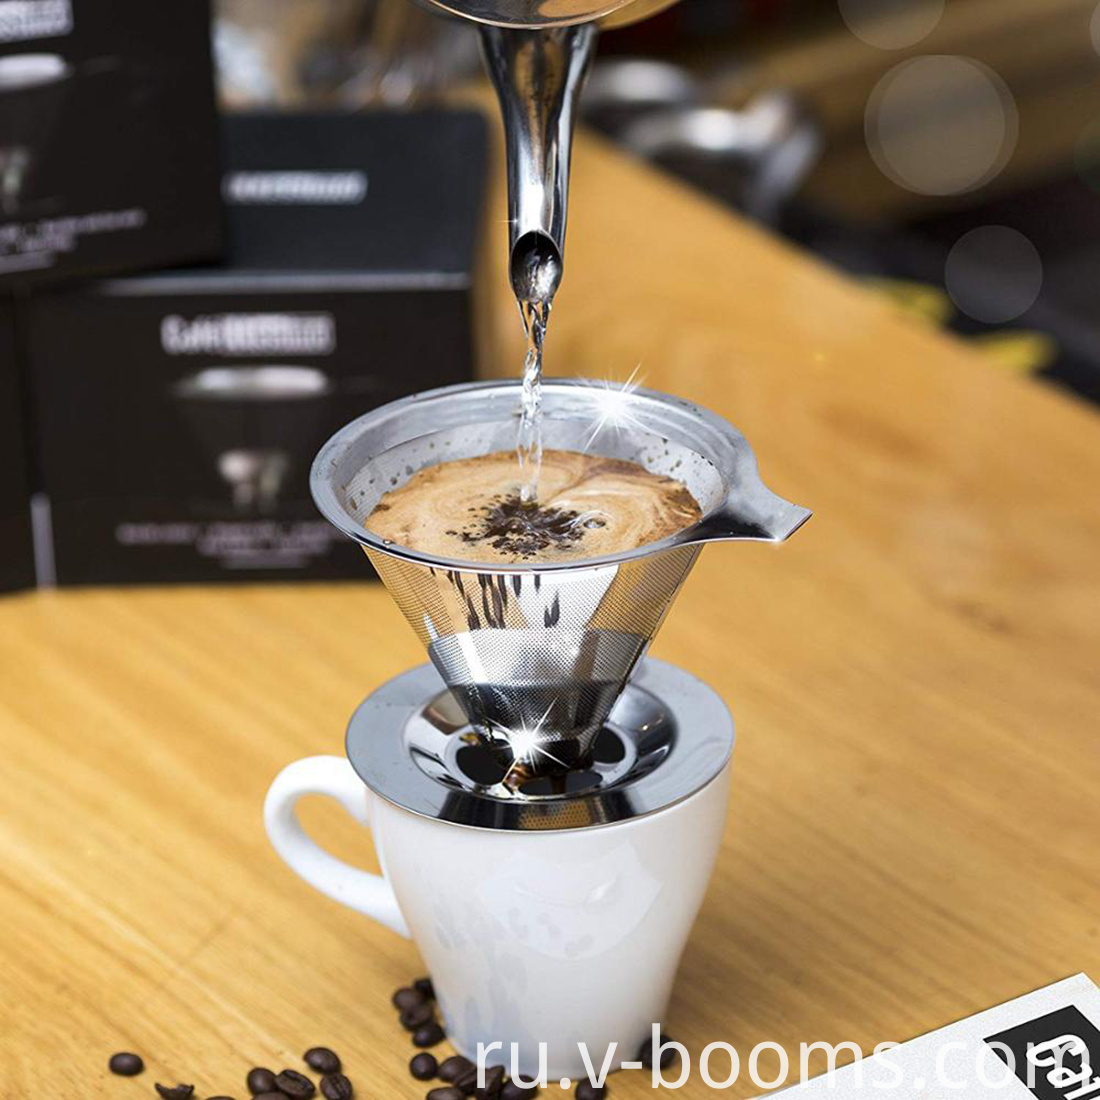 Stainless Steel Pour Over Coffee Dripper